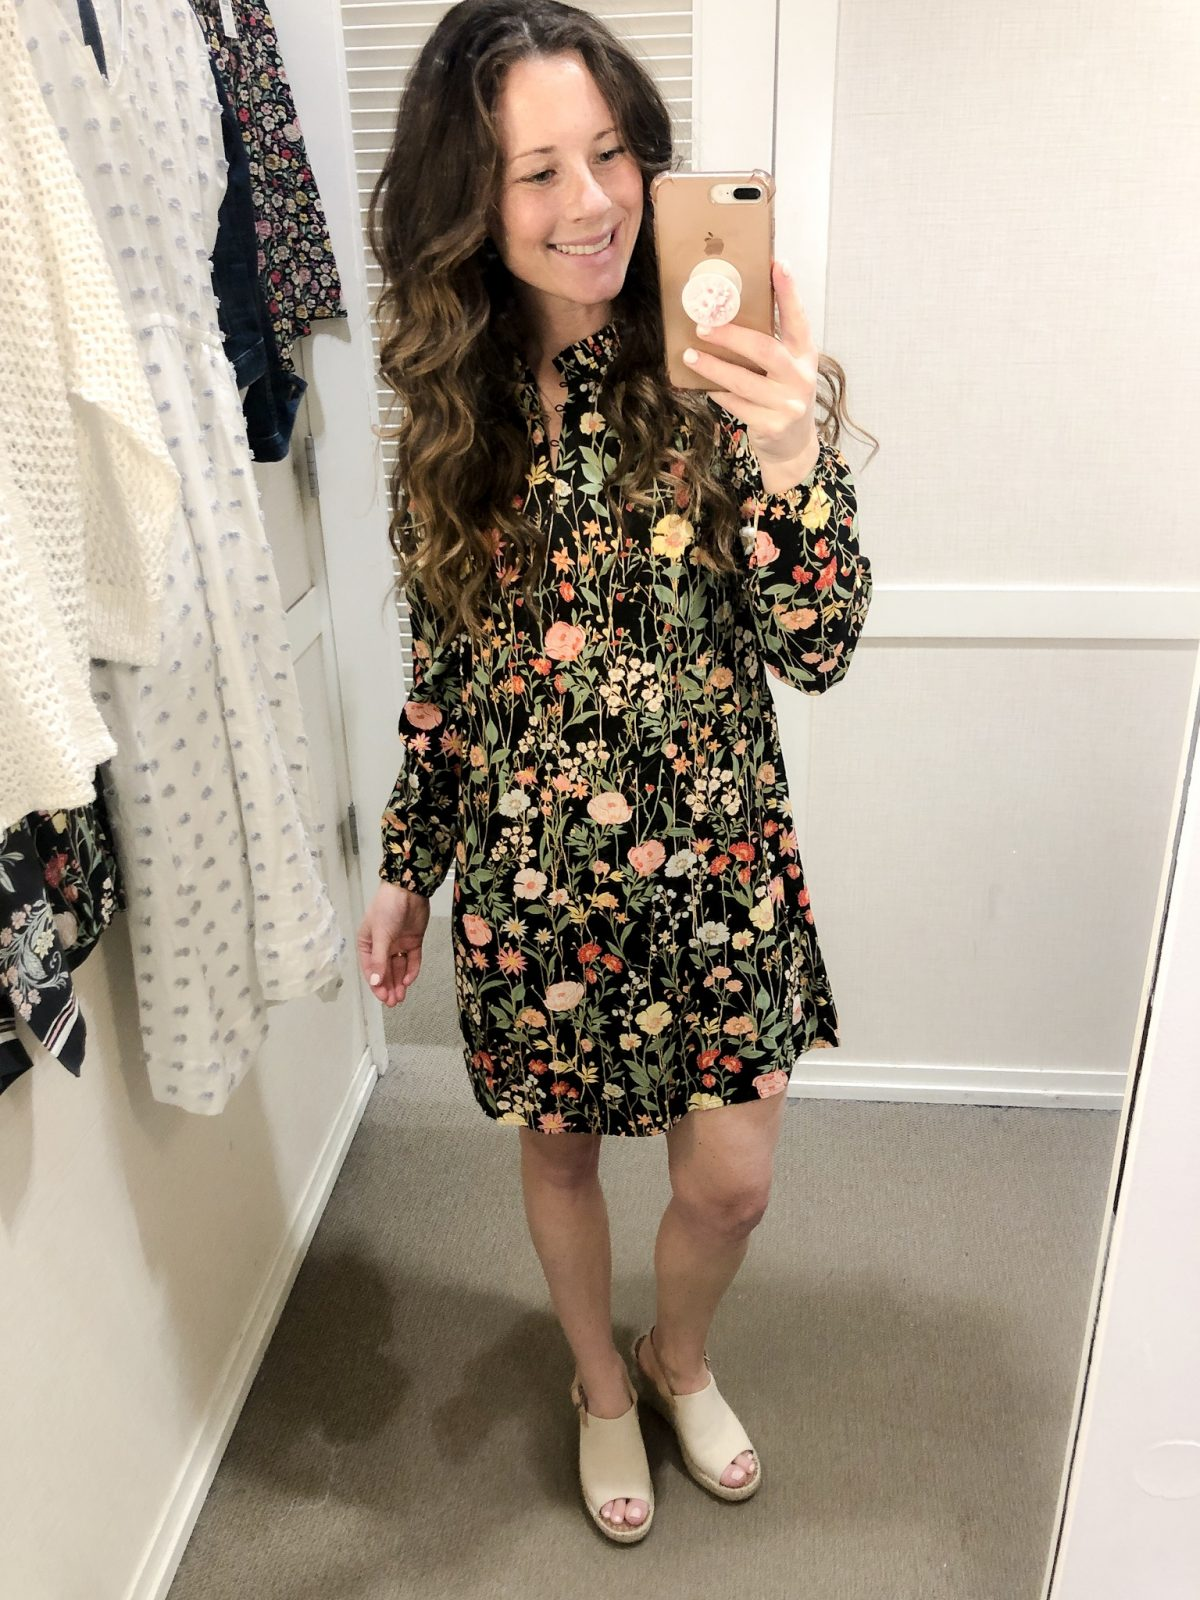 Black Floral Dress with Tan Slingback Peep Toe Espadrille by TOMS on Woman at LOFT Confessions of a Northern Belle